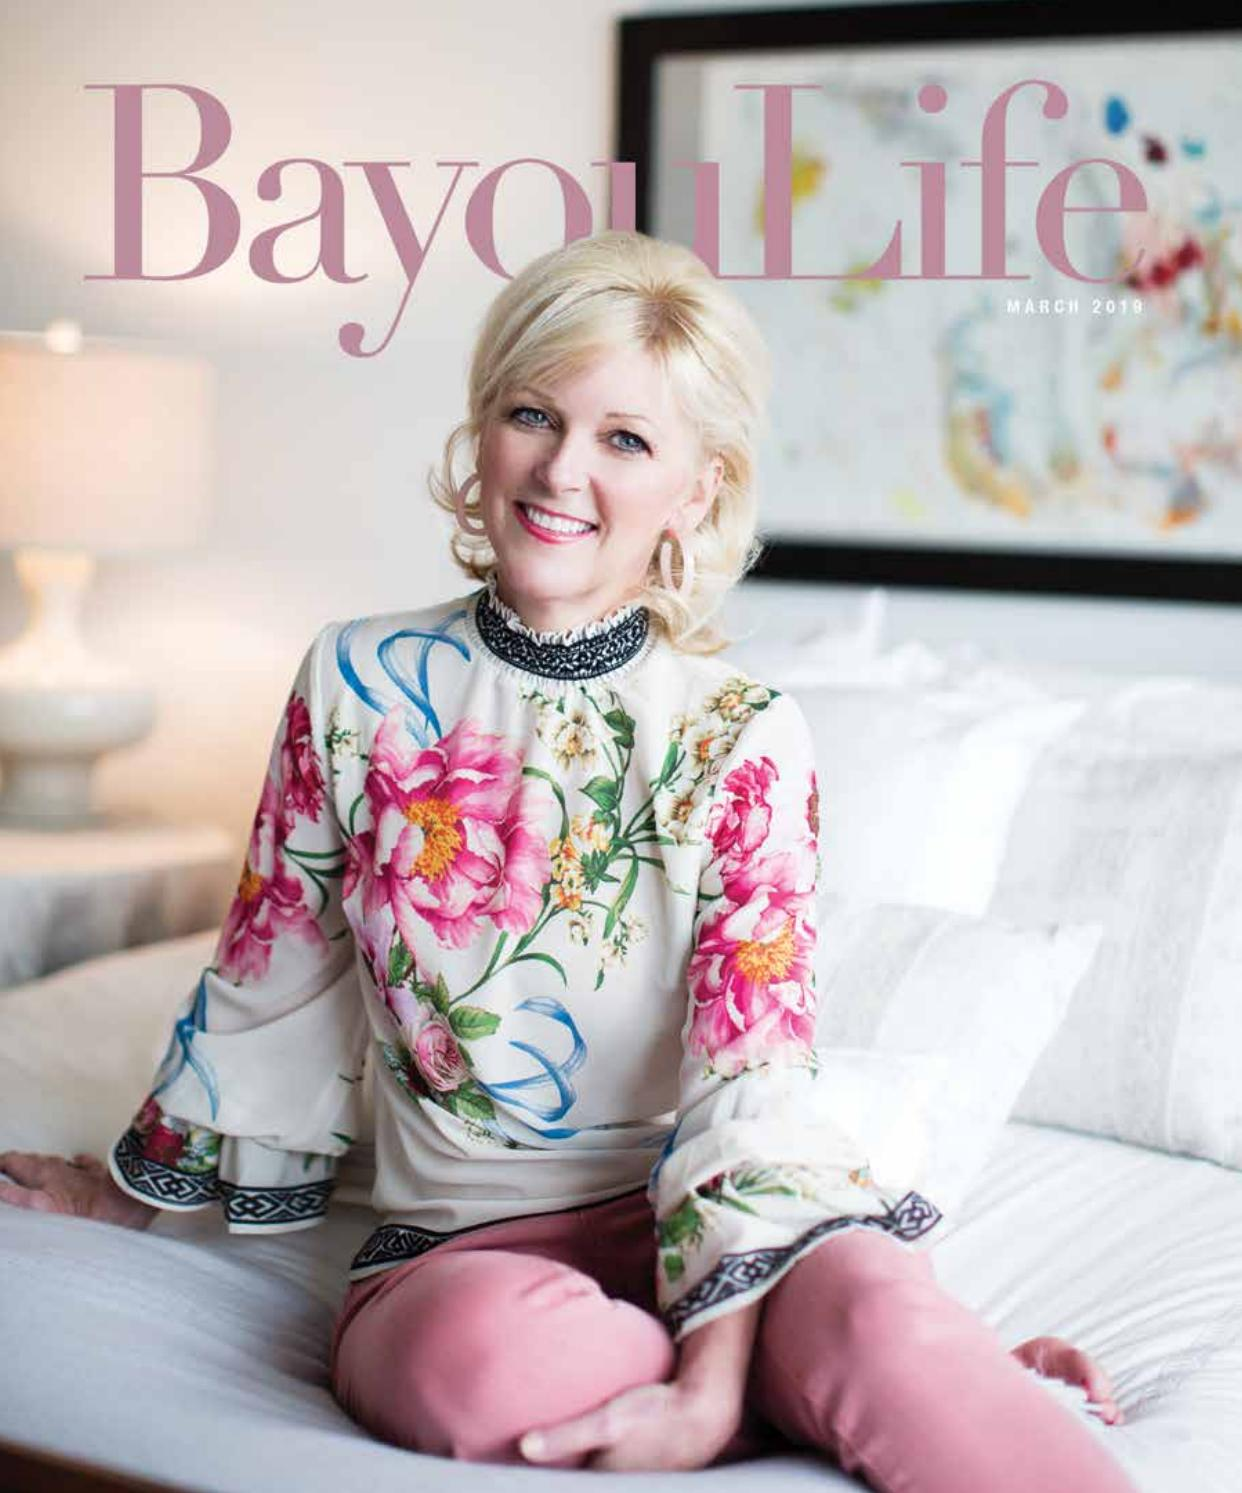 c8cabd82 BayouLIfe March 2019 by BayouLife Magazine - issuu